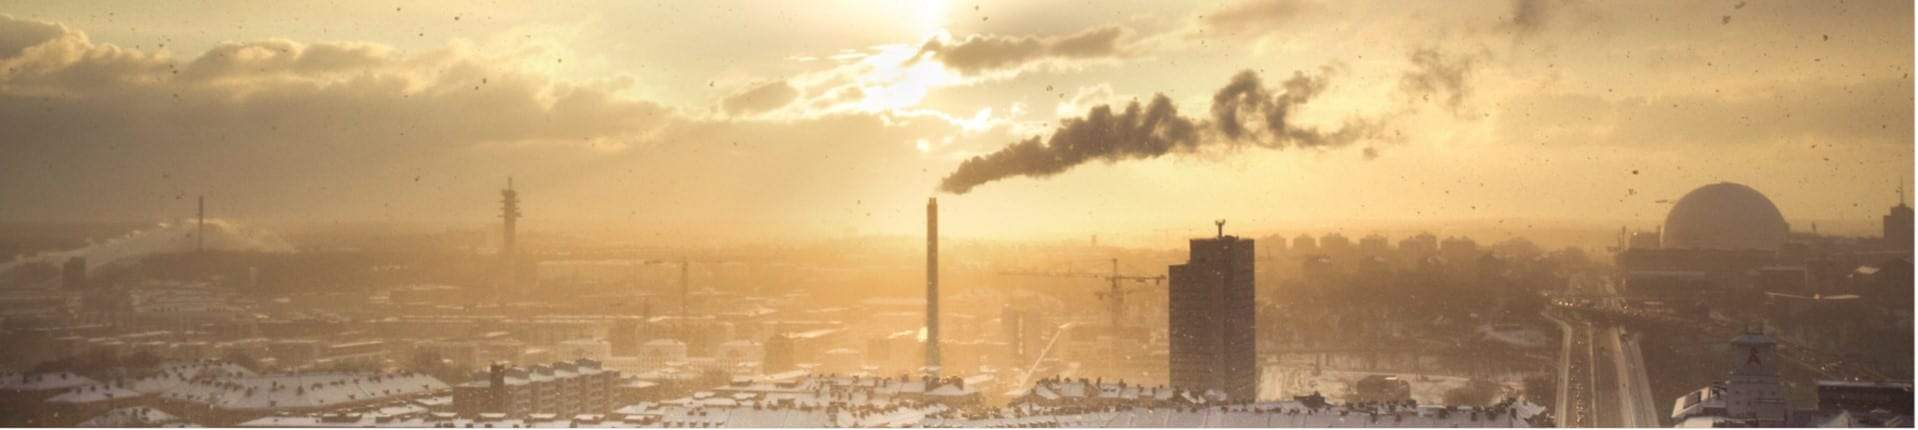 air pollution Marian Salzman article banner